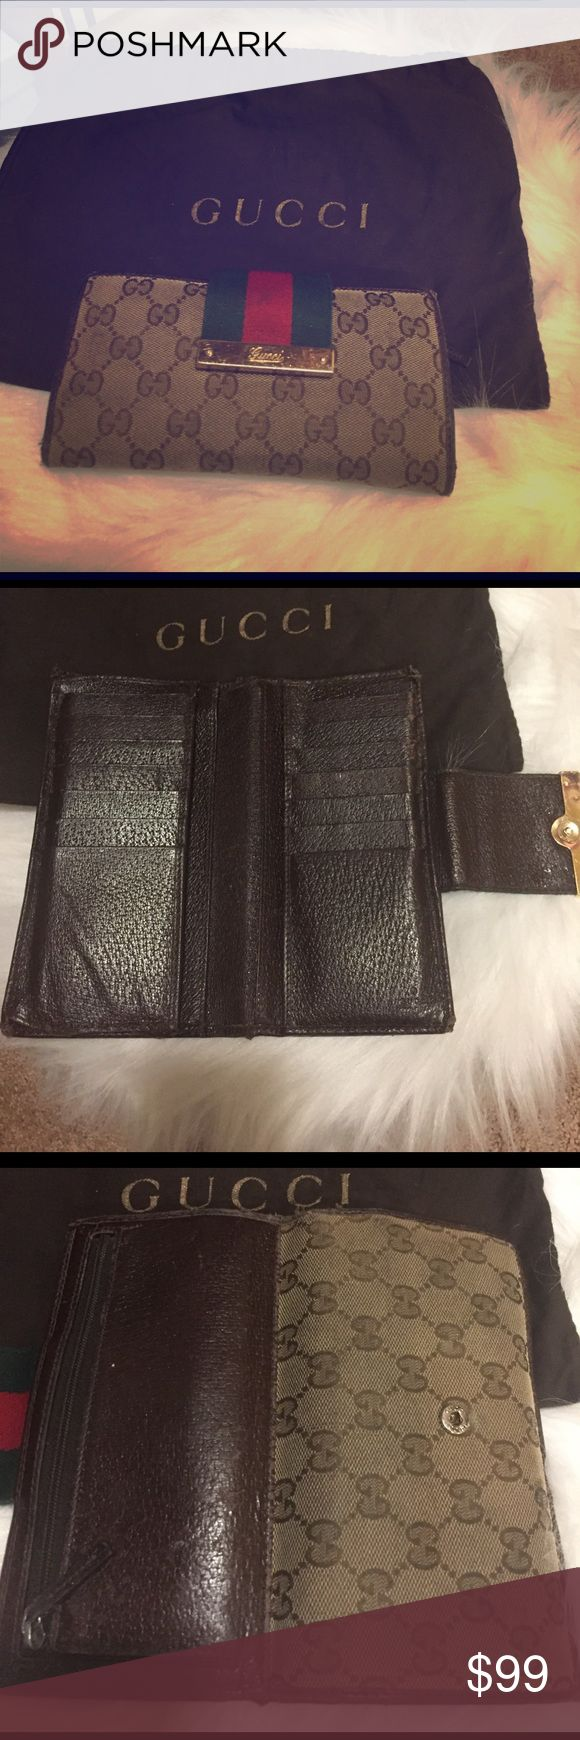 Gucci GG Web Canvas Wallet This Gucci GG Web Canvas Wallet was purchased at The Gucci Store in Las Vegas at The Forum Shops at Caesars Palace. Wallet does have signs of wear. It is used. It comes with Gucci Dust bag. Gucci Bags Wallets